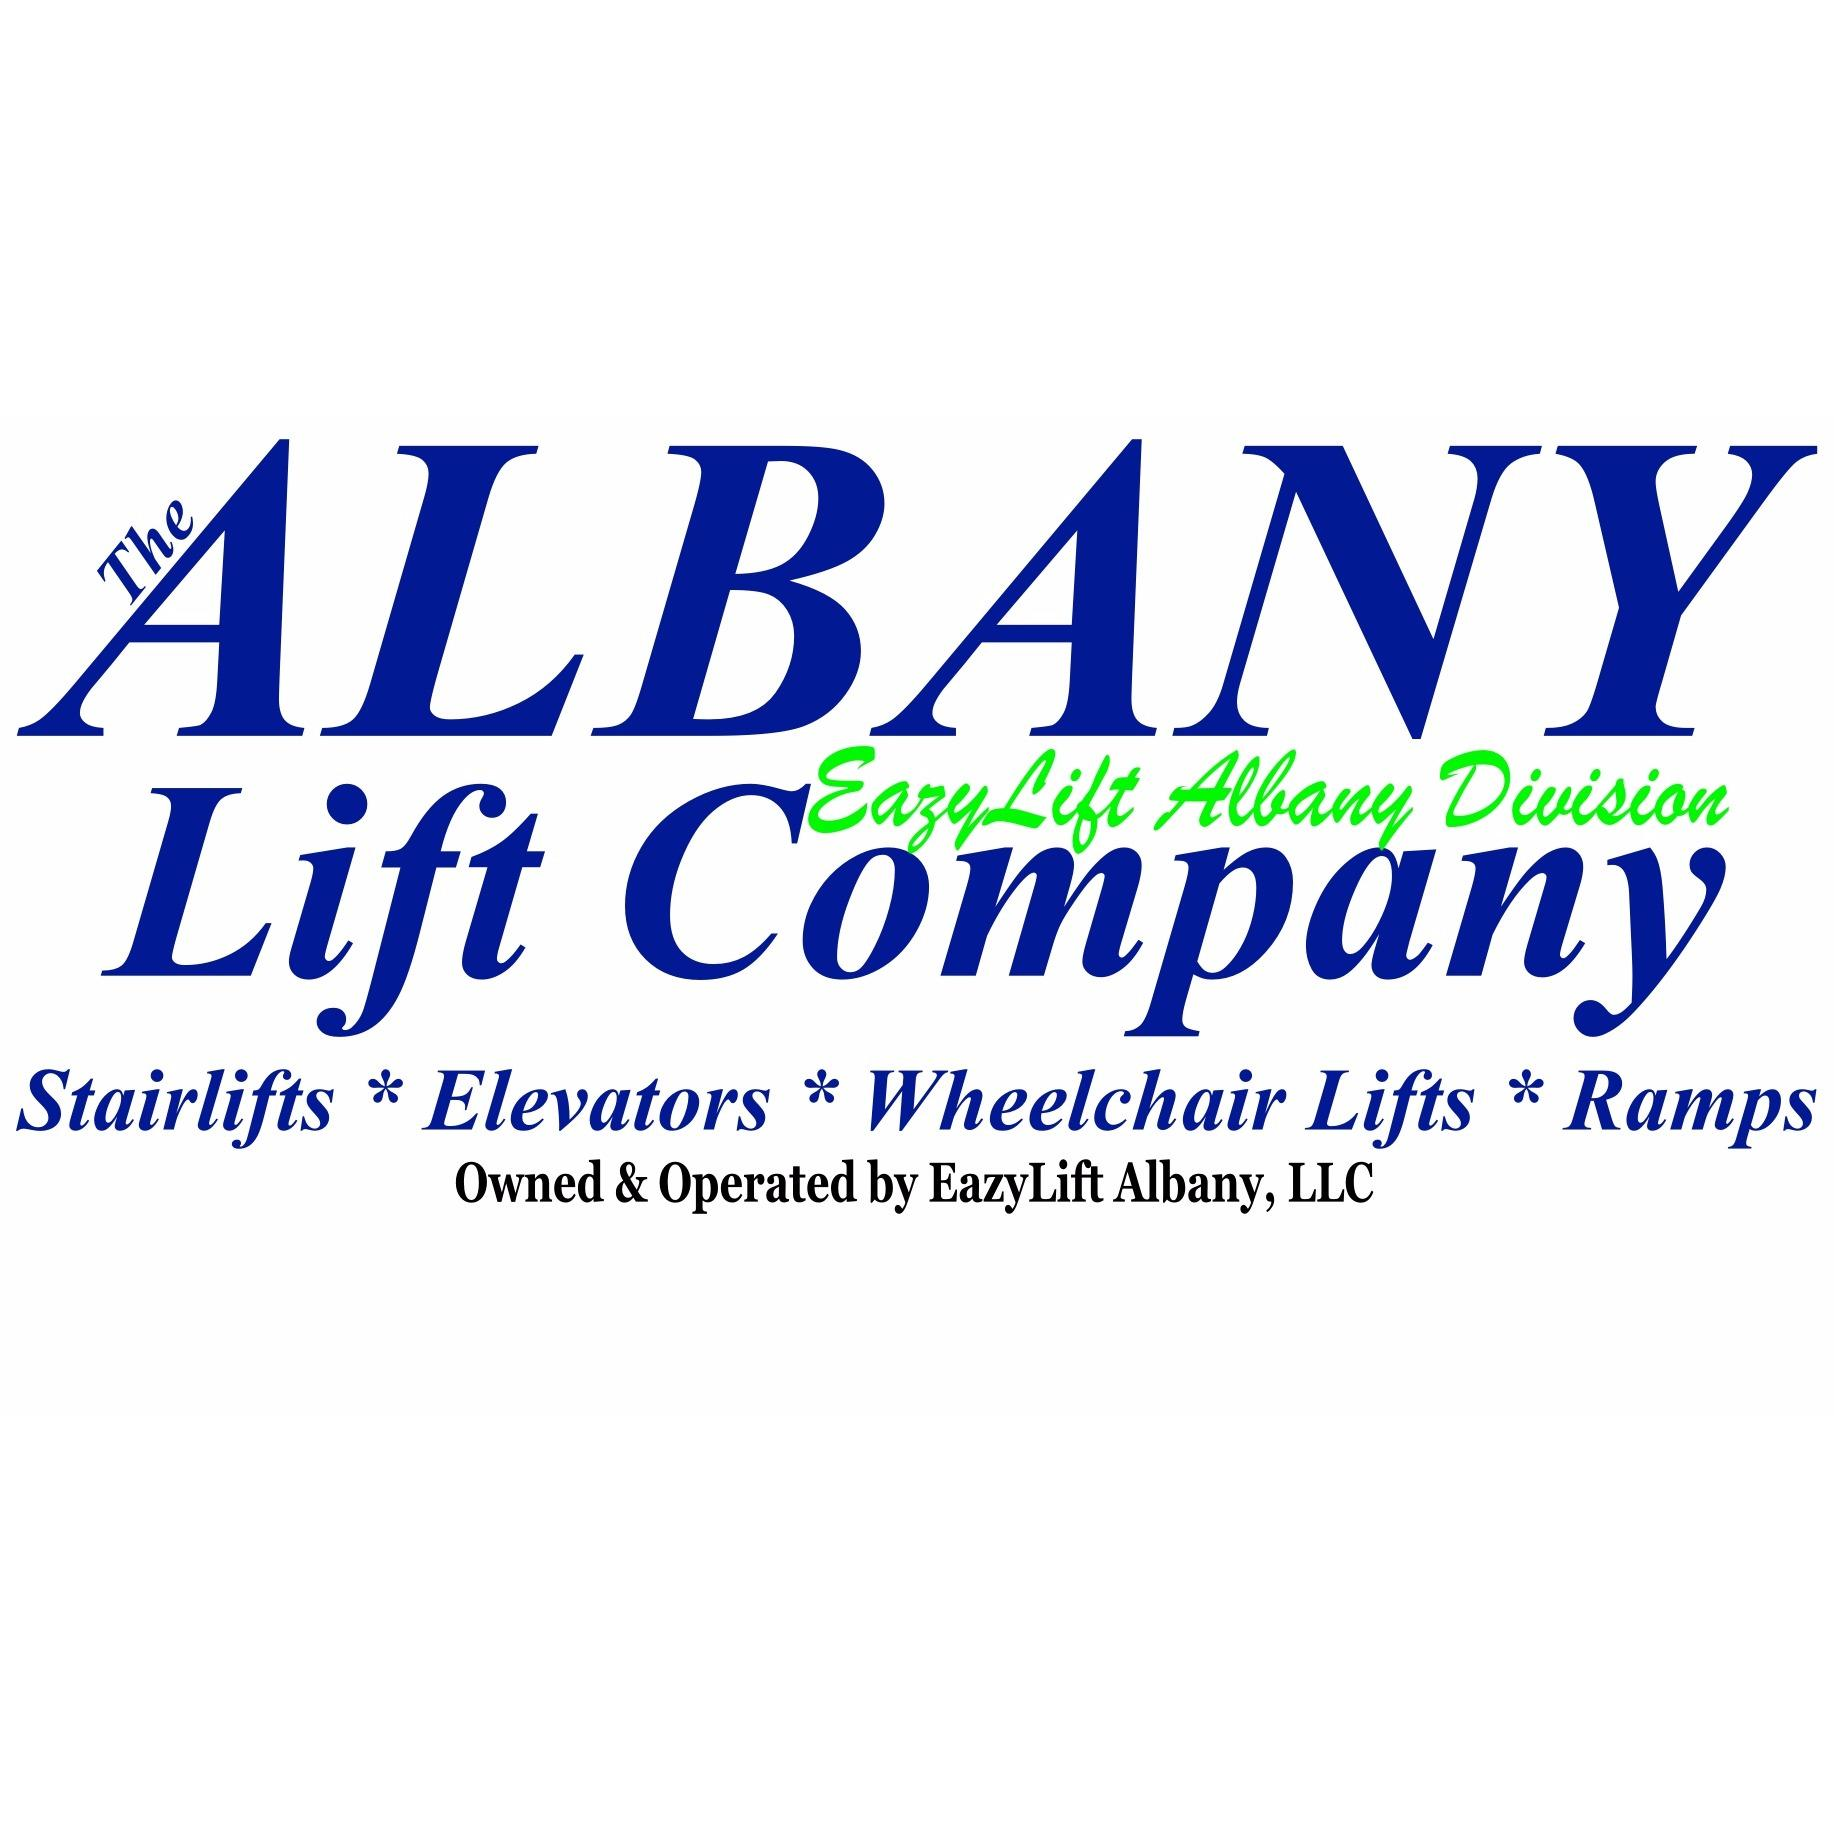 The Albany Lift Company, Owned & Operated by EazyLift Albany, LLC